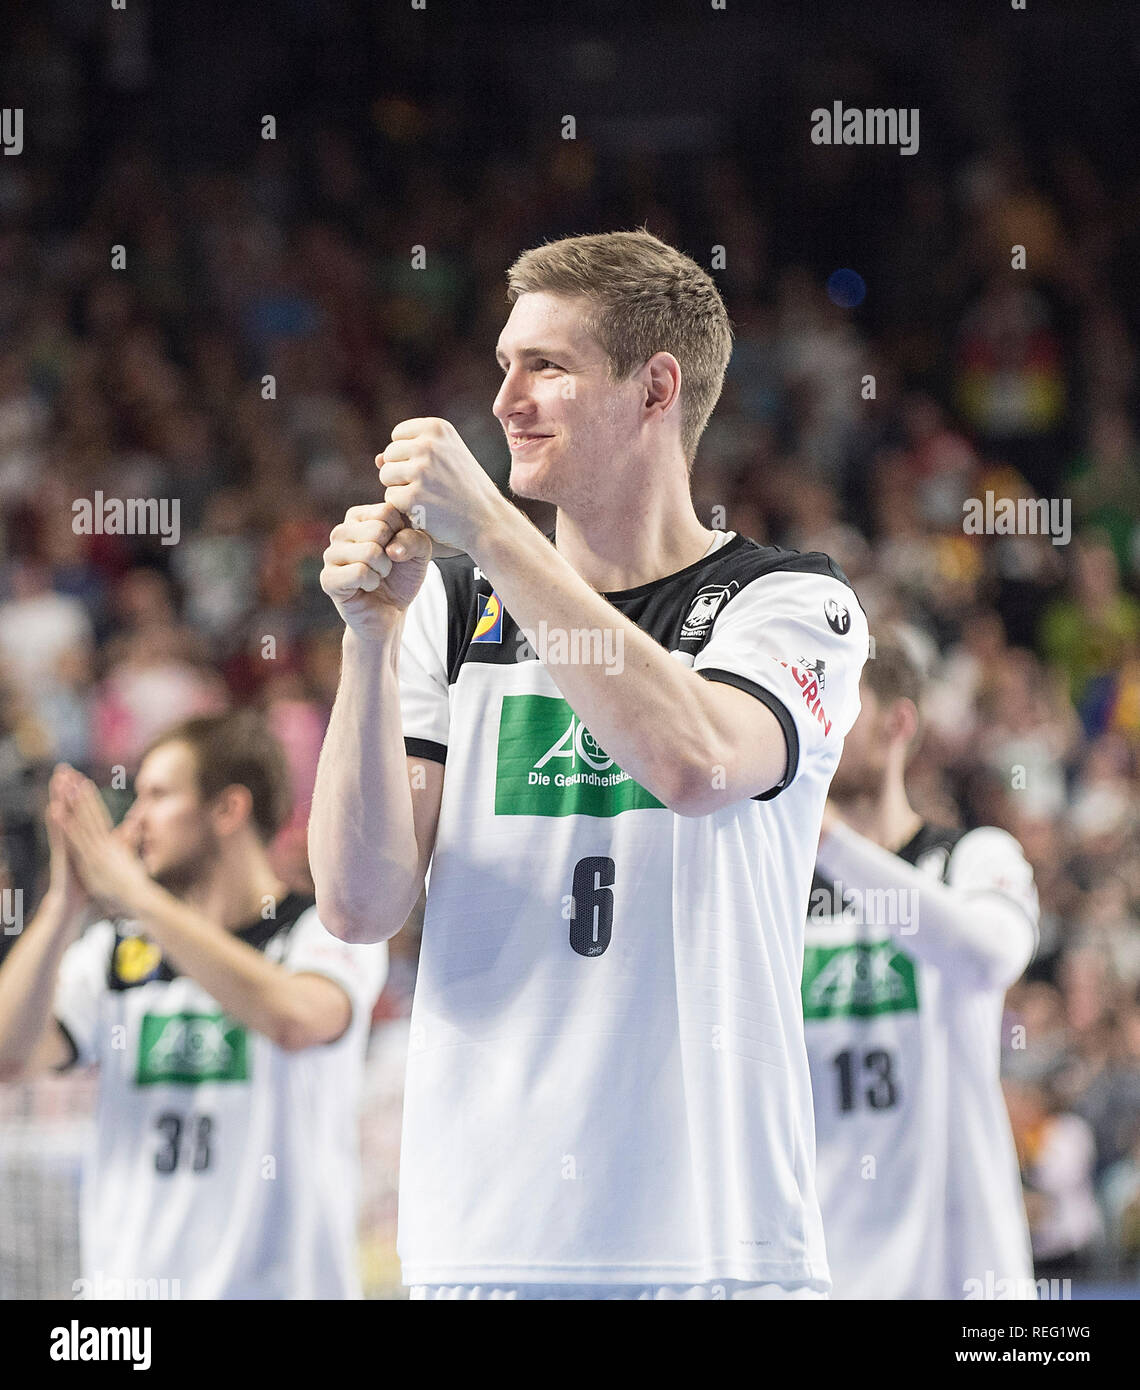 Cologne, Deutschland. 19th Jan, 2019. final jubilation Finn LEMKE (GER) Main Round Group I, Germany (GER) - Iceland (ISL) 24 - 19, on 19/01/2019 in Koeln/Germany. Handball World Cup 2019, from 10.01. - 27.01.2019 in Germany/Denmark. | usage worldwide Credit: dpa/Alamy Live News Stock Photo